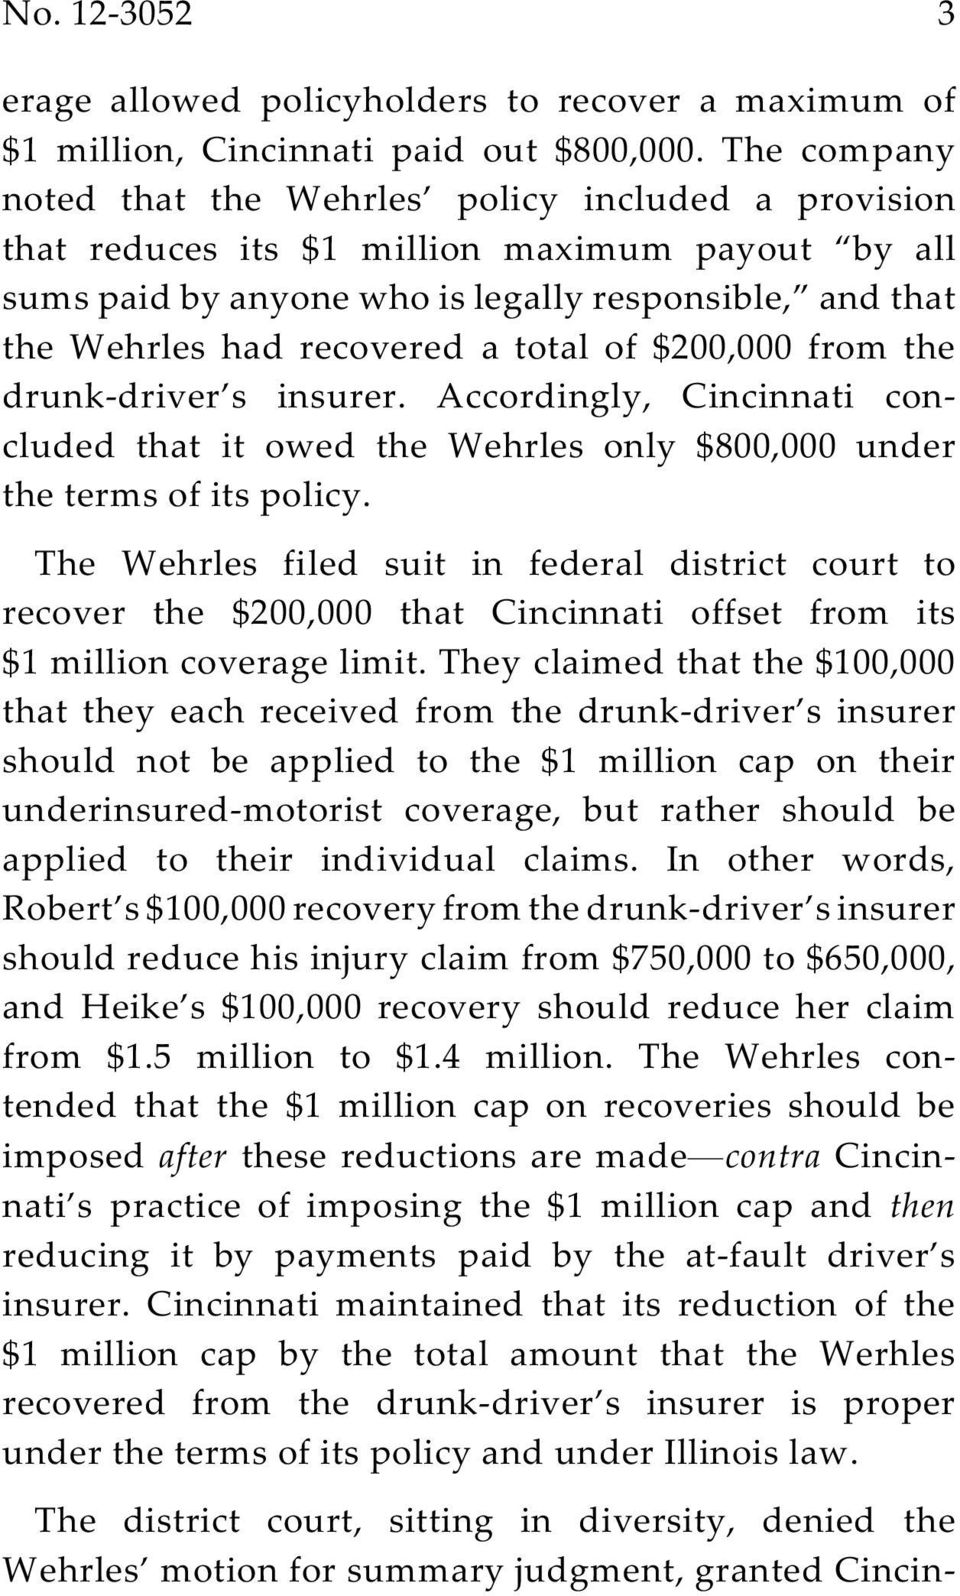 total of $200,000 from the drunk-driver s insurer. Accordingly, Cincinnati concluded that it owed the Wehrles only $800,000 under the terms of its policy.